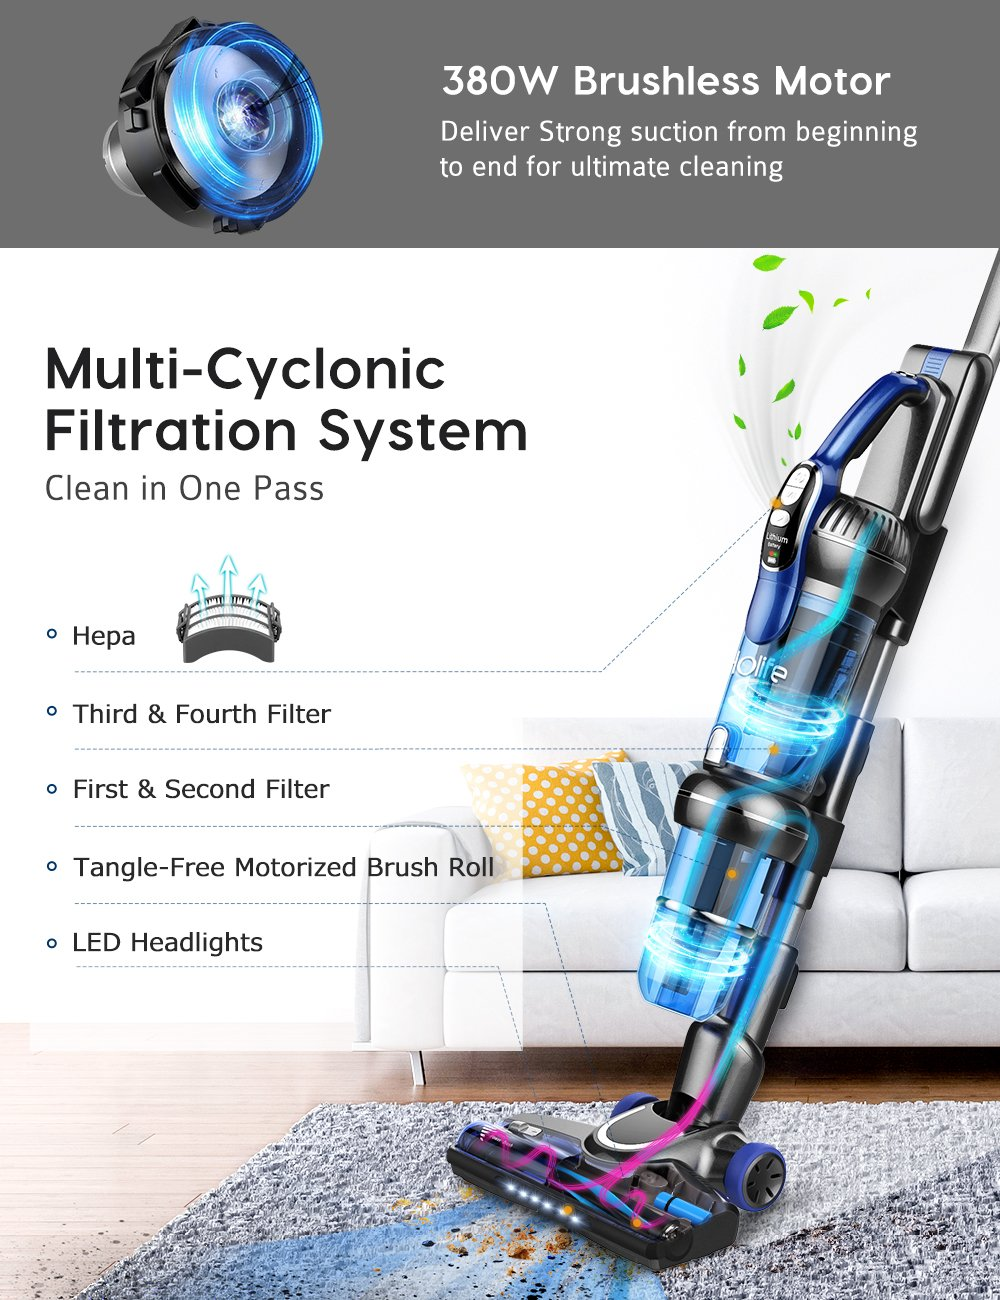 Holife 2 in 1 Cordless Vacuum Cleaner - 20Kpa Powerful Lightweight Stick Handheld Vacuum Cleaner with Long Lasting 25.2V 2500mAh Rechargeable Li-Ion Battery for Home Floor Carpet Pet Hair Car Cleaning LivSense